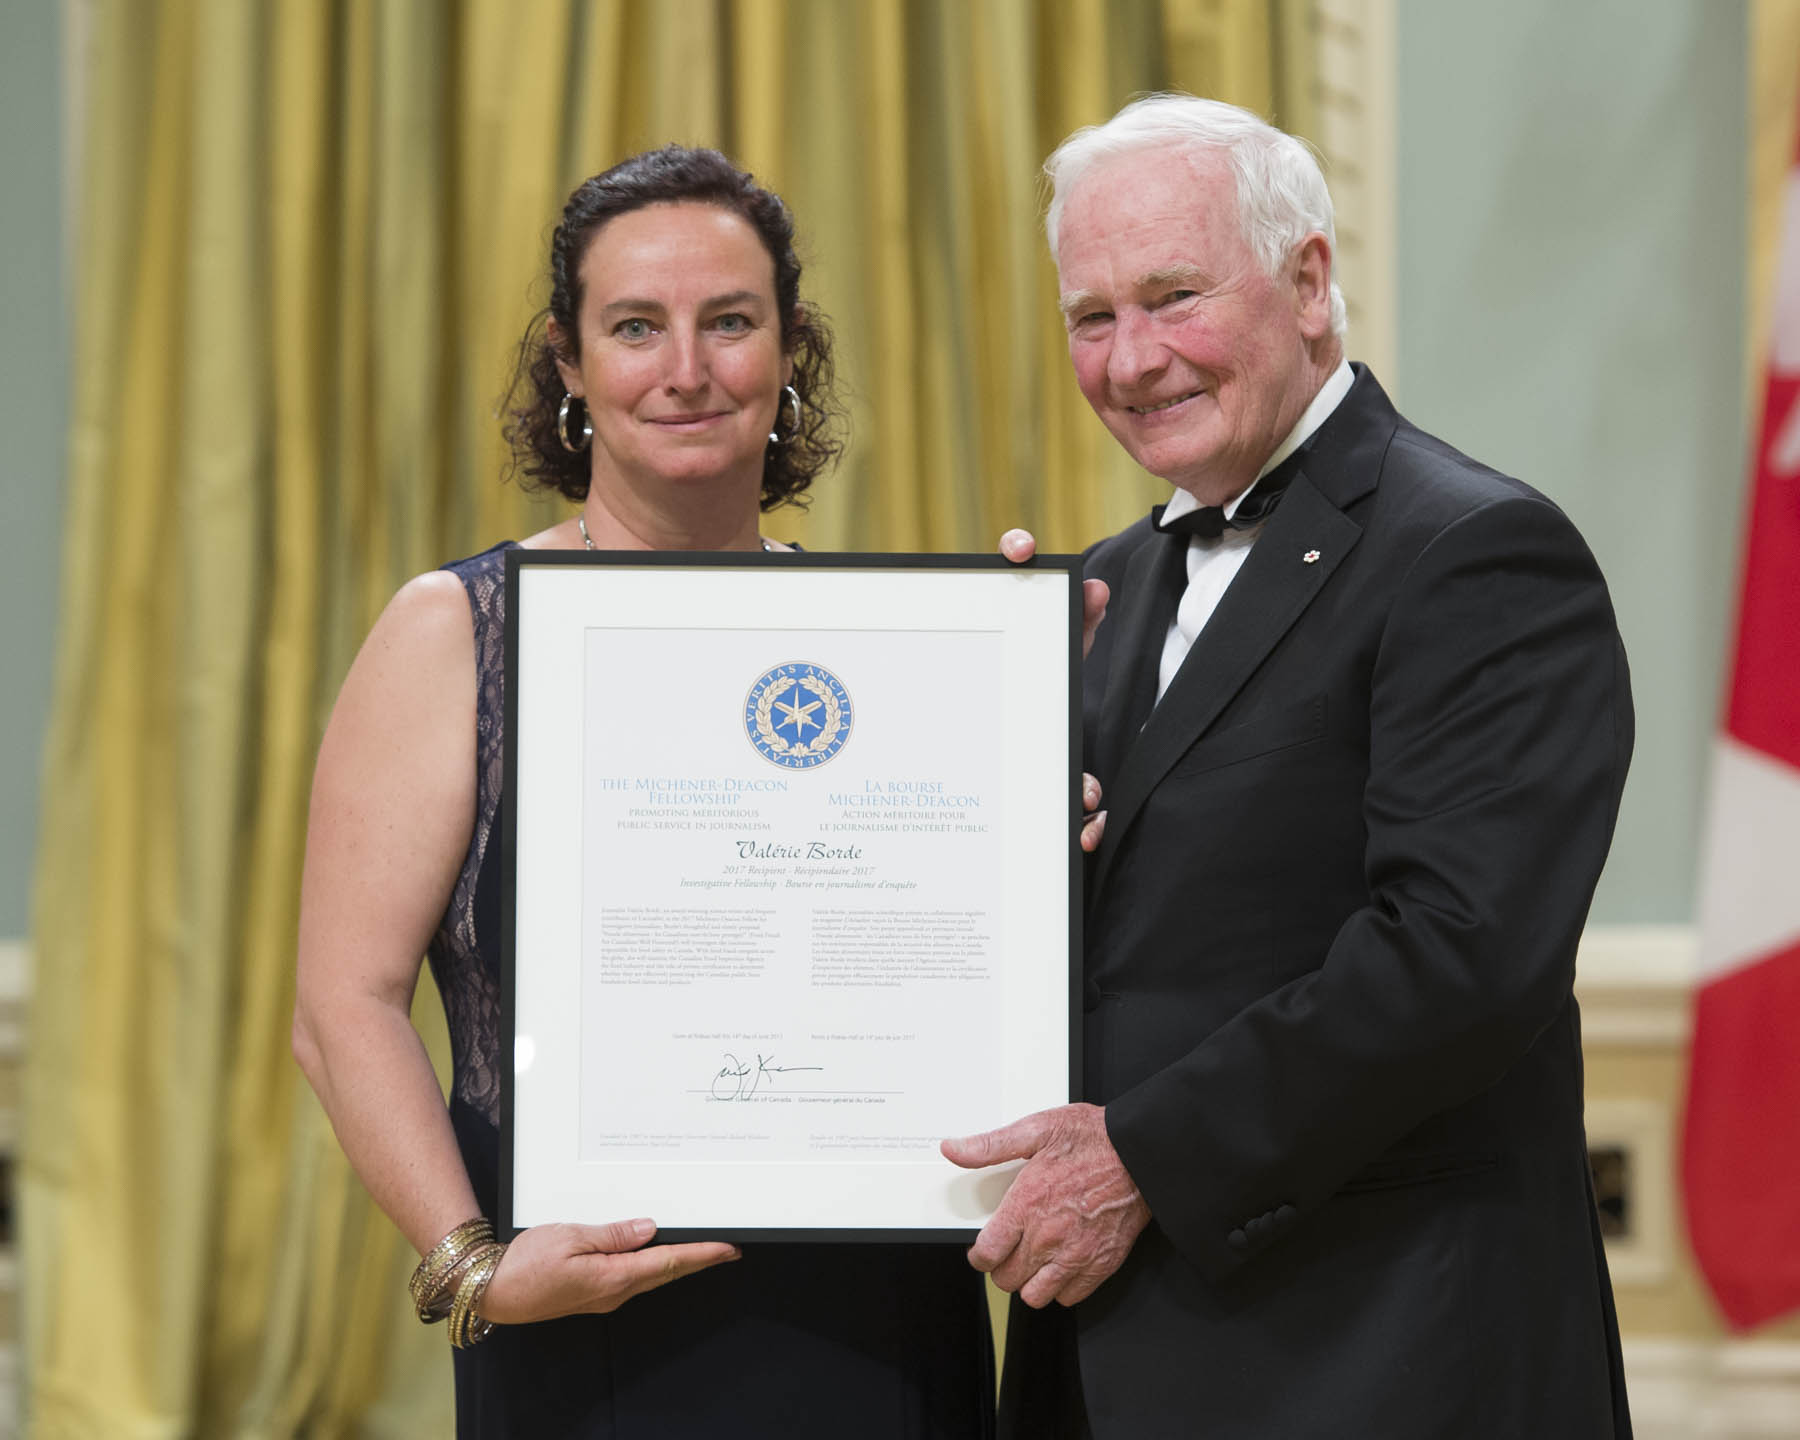 Valérie Borde is the recipient of the 2017 Michener-Deacon Fellowship for Investigative Journalism. This award was created to encourage excellence in investigative print, broadcast and online journalism. The winning fellow is expected to undertake a project that aspires to the criteria of the Michener Award, with emphasis on identifiable benefits for the public good, improvements in public policy, ethical standards, corporate governance or the lives of Canadians.